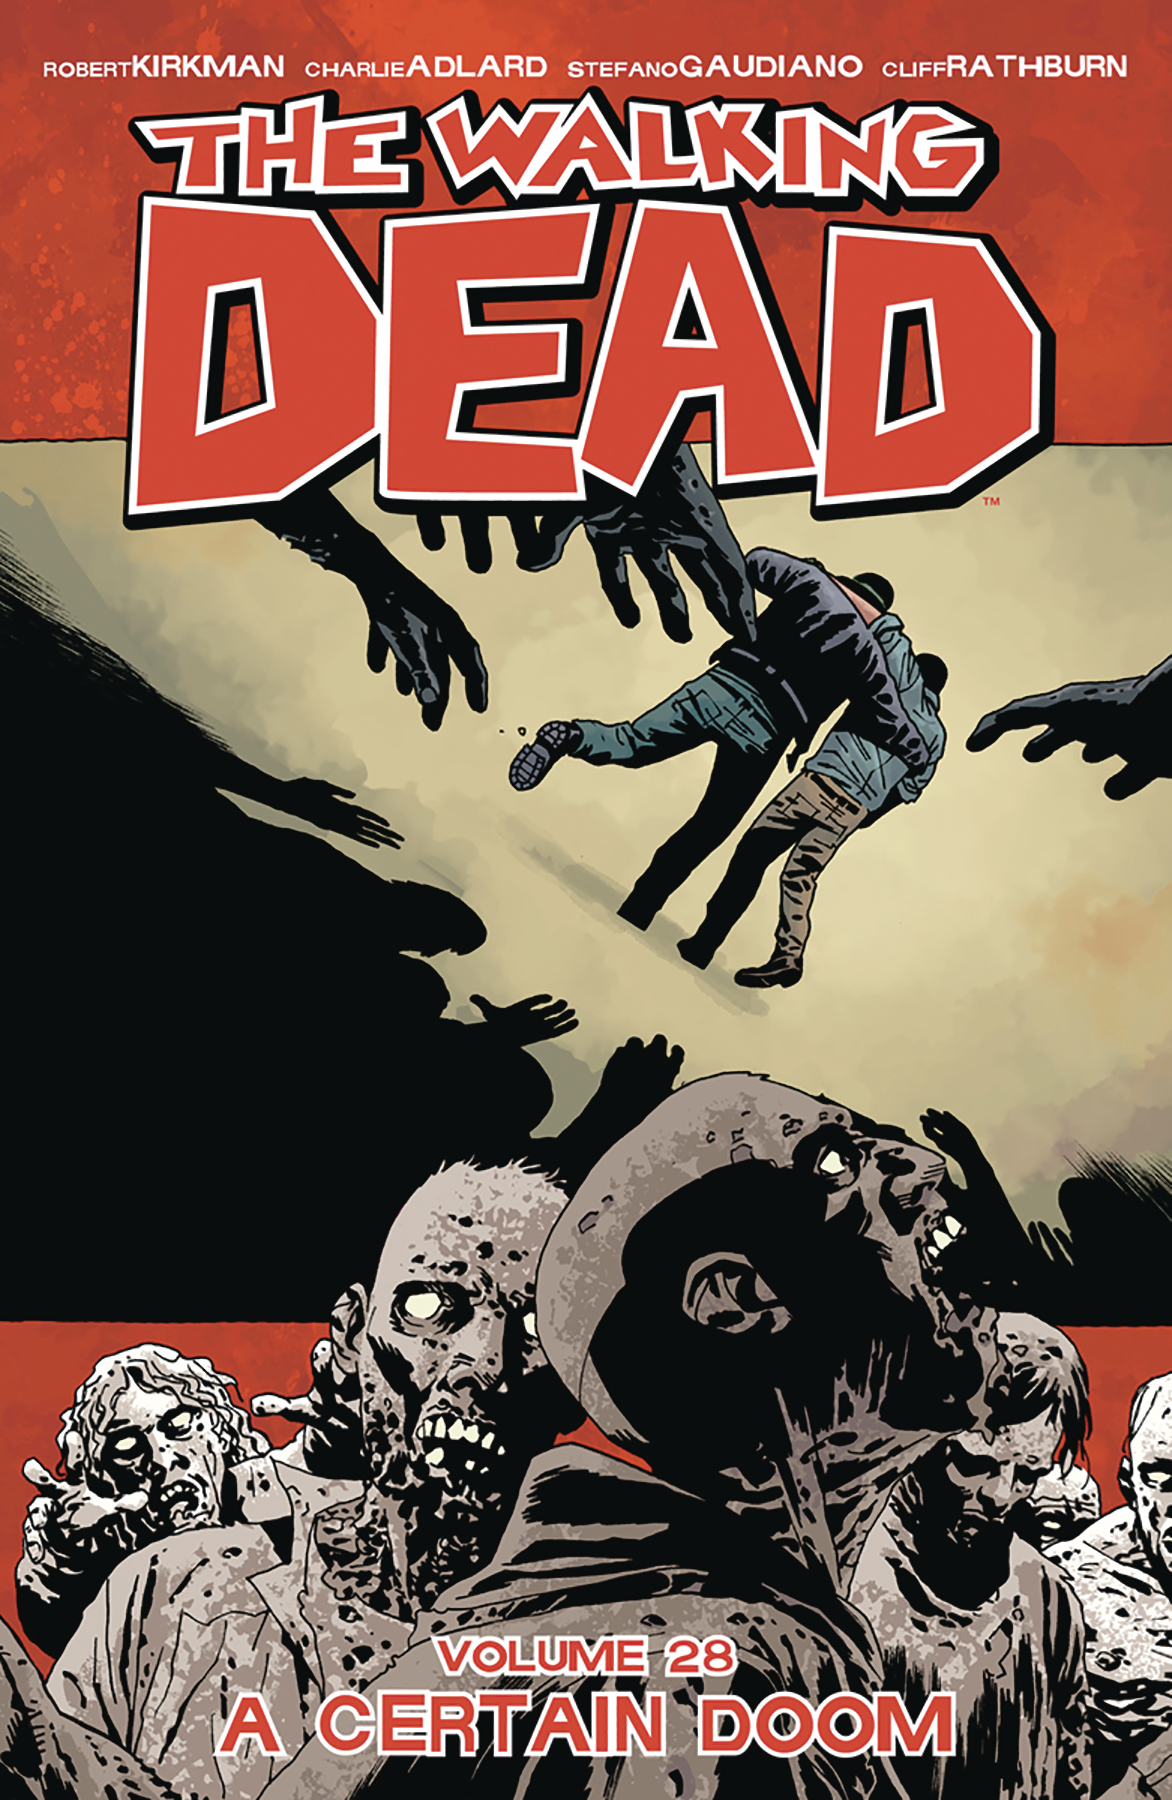 WALKING DEAD TP VOL 28 A CERTAIN DOOM (JUL170919) (MR)